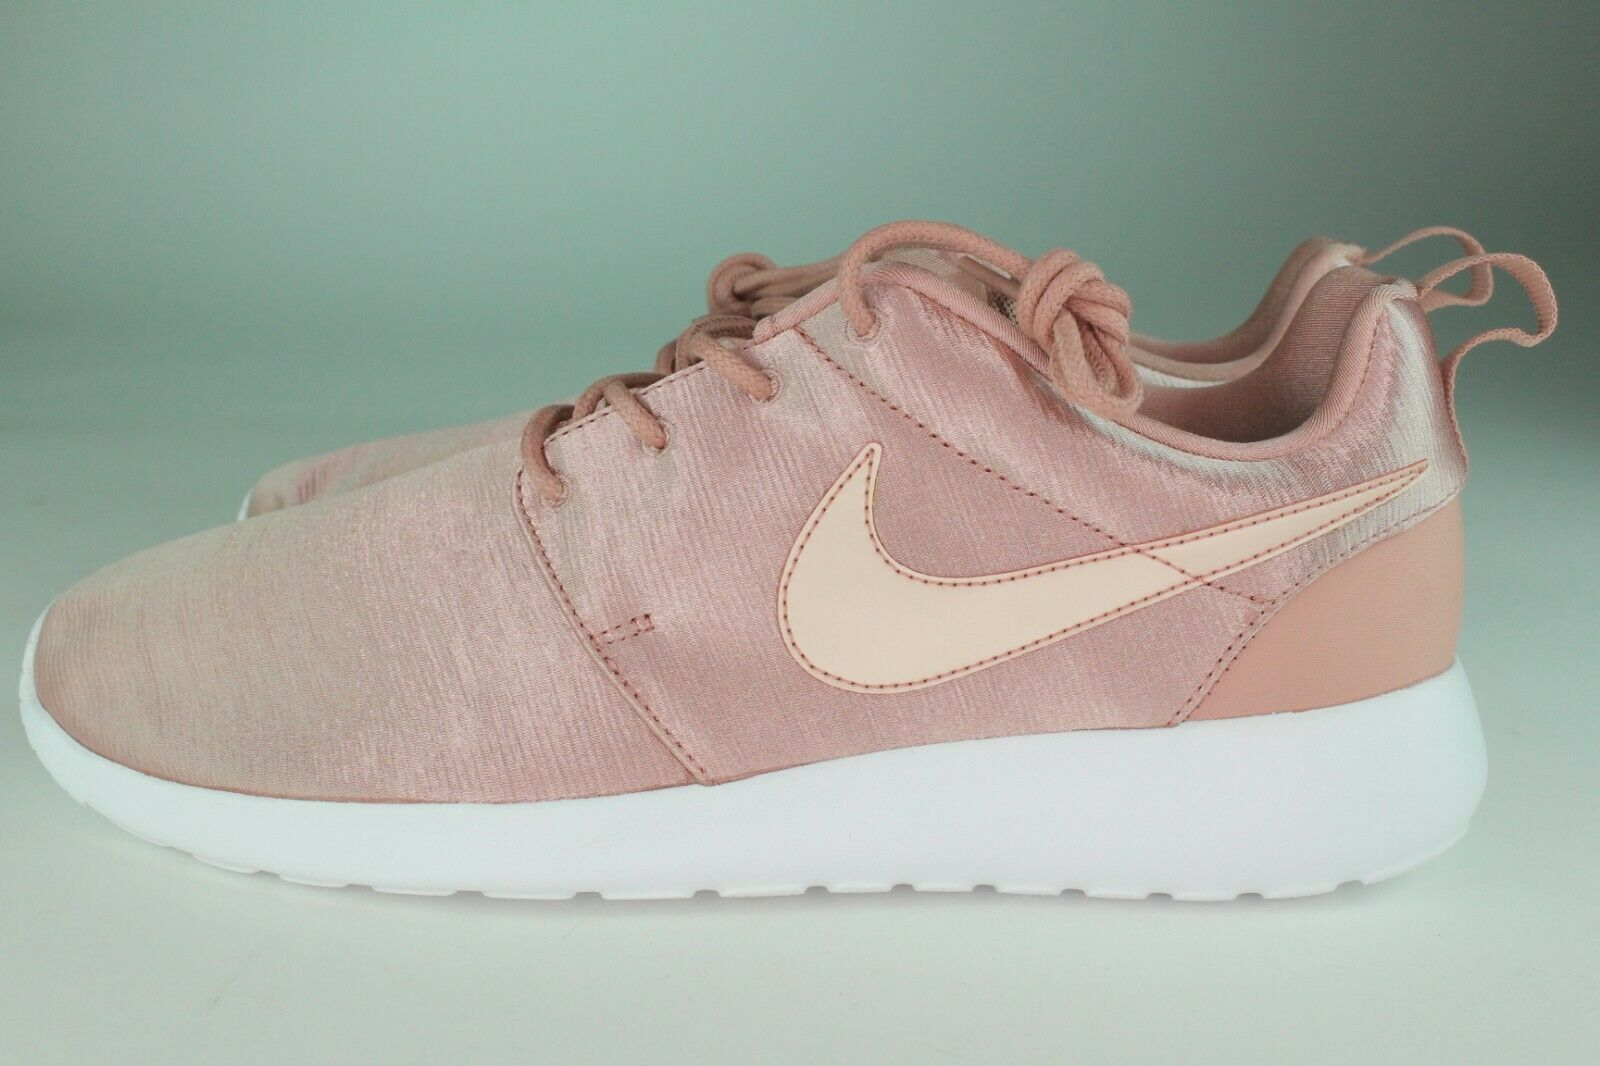 NIKE WOMEN'S ROSHE ONE PREMIUM SIZE 8.5 TO 10.0 RUST PINK NEW COMFORTABLE